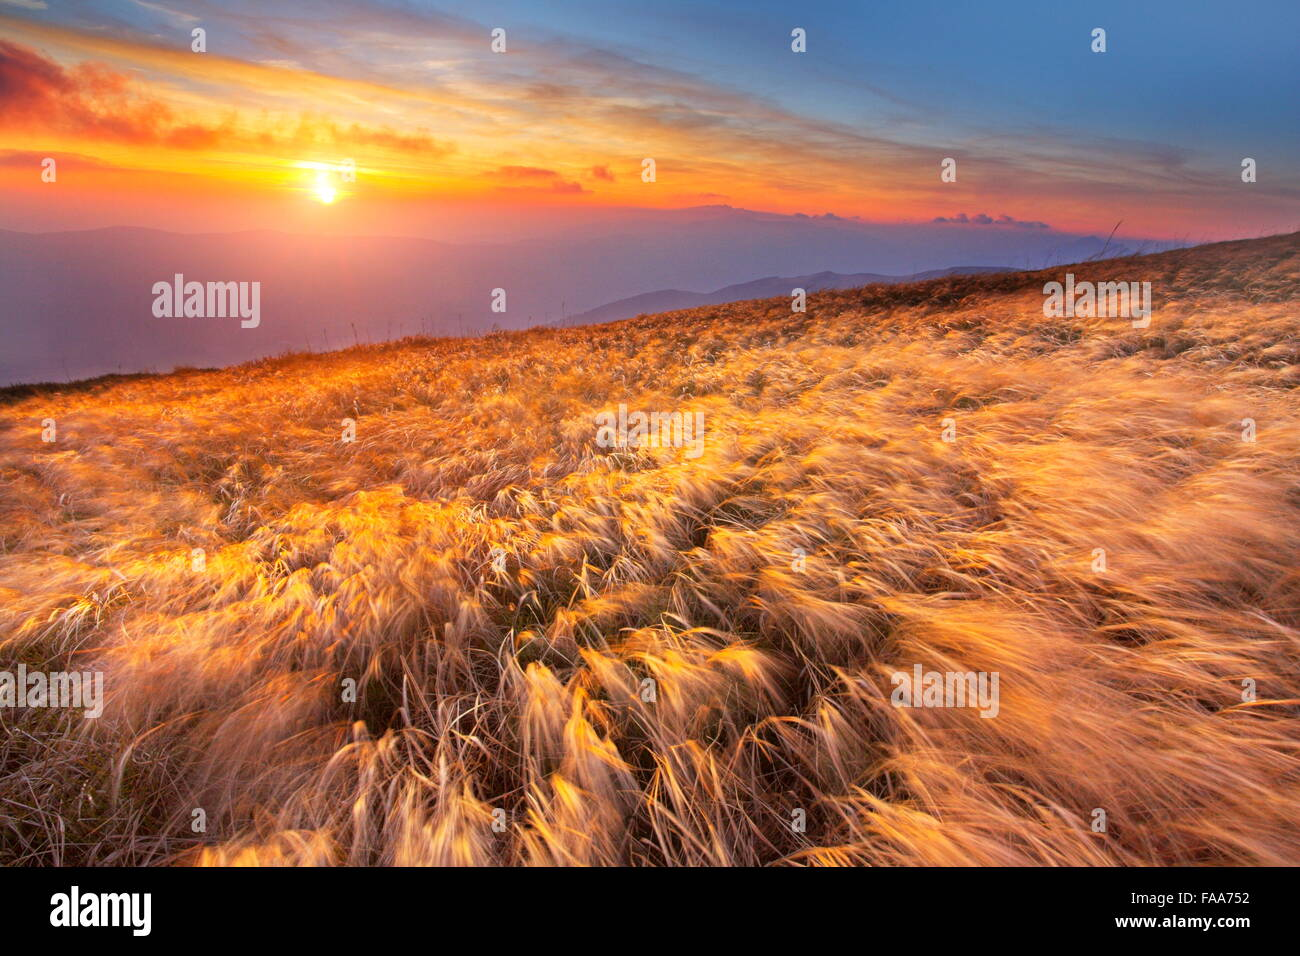 The sunset in Bieszczady Mountains, Poland - Stock Image